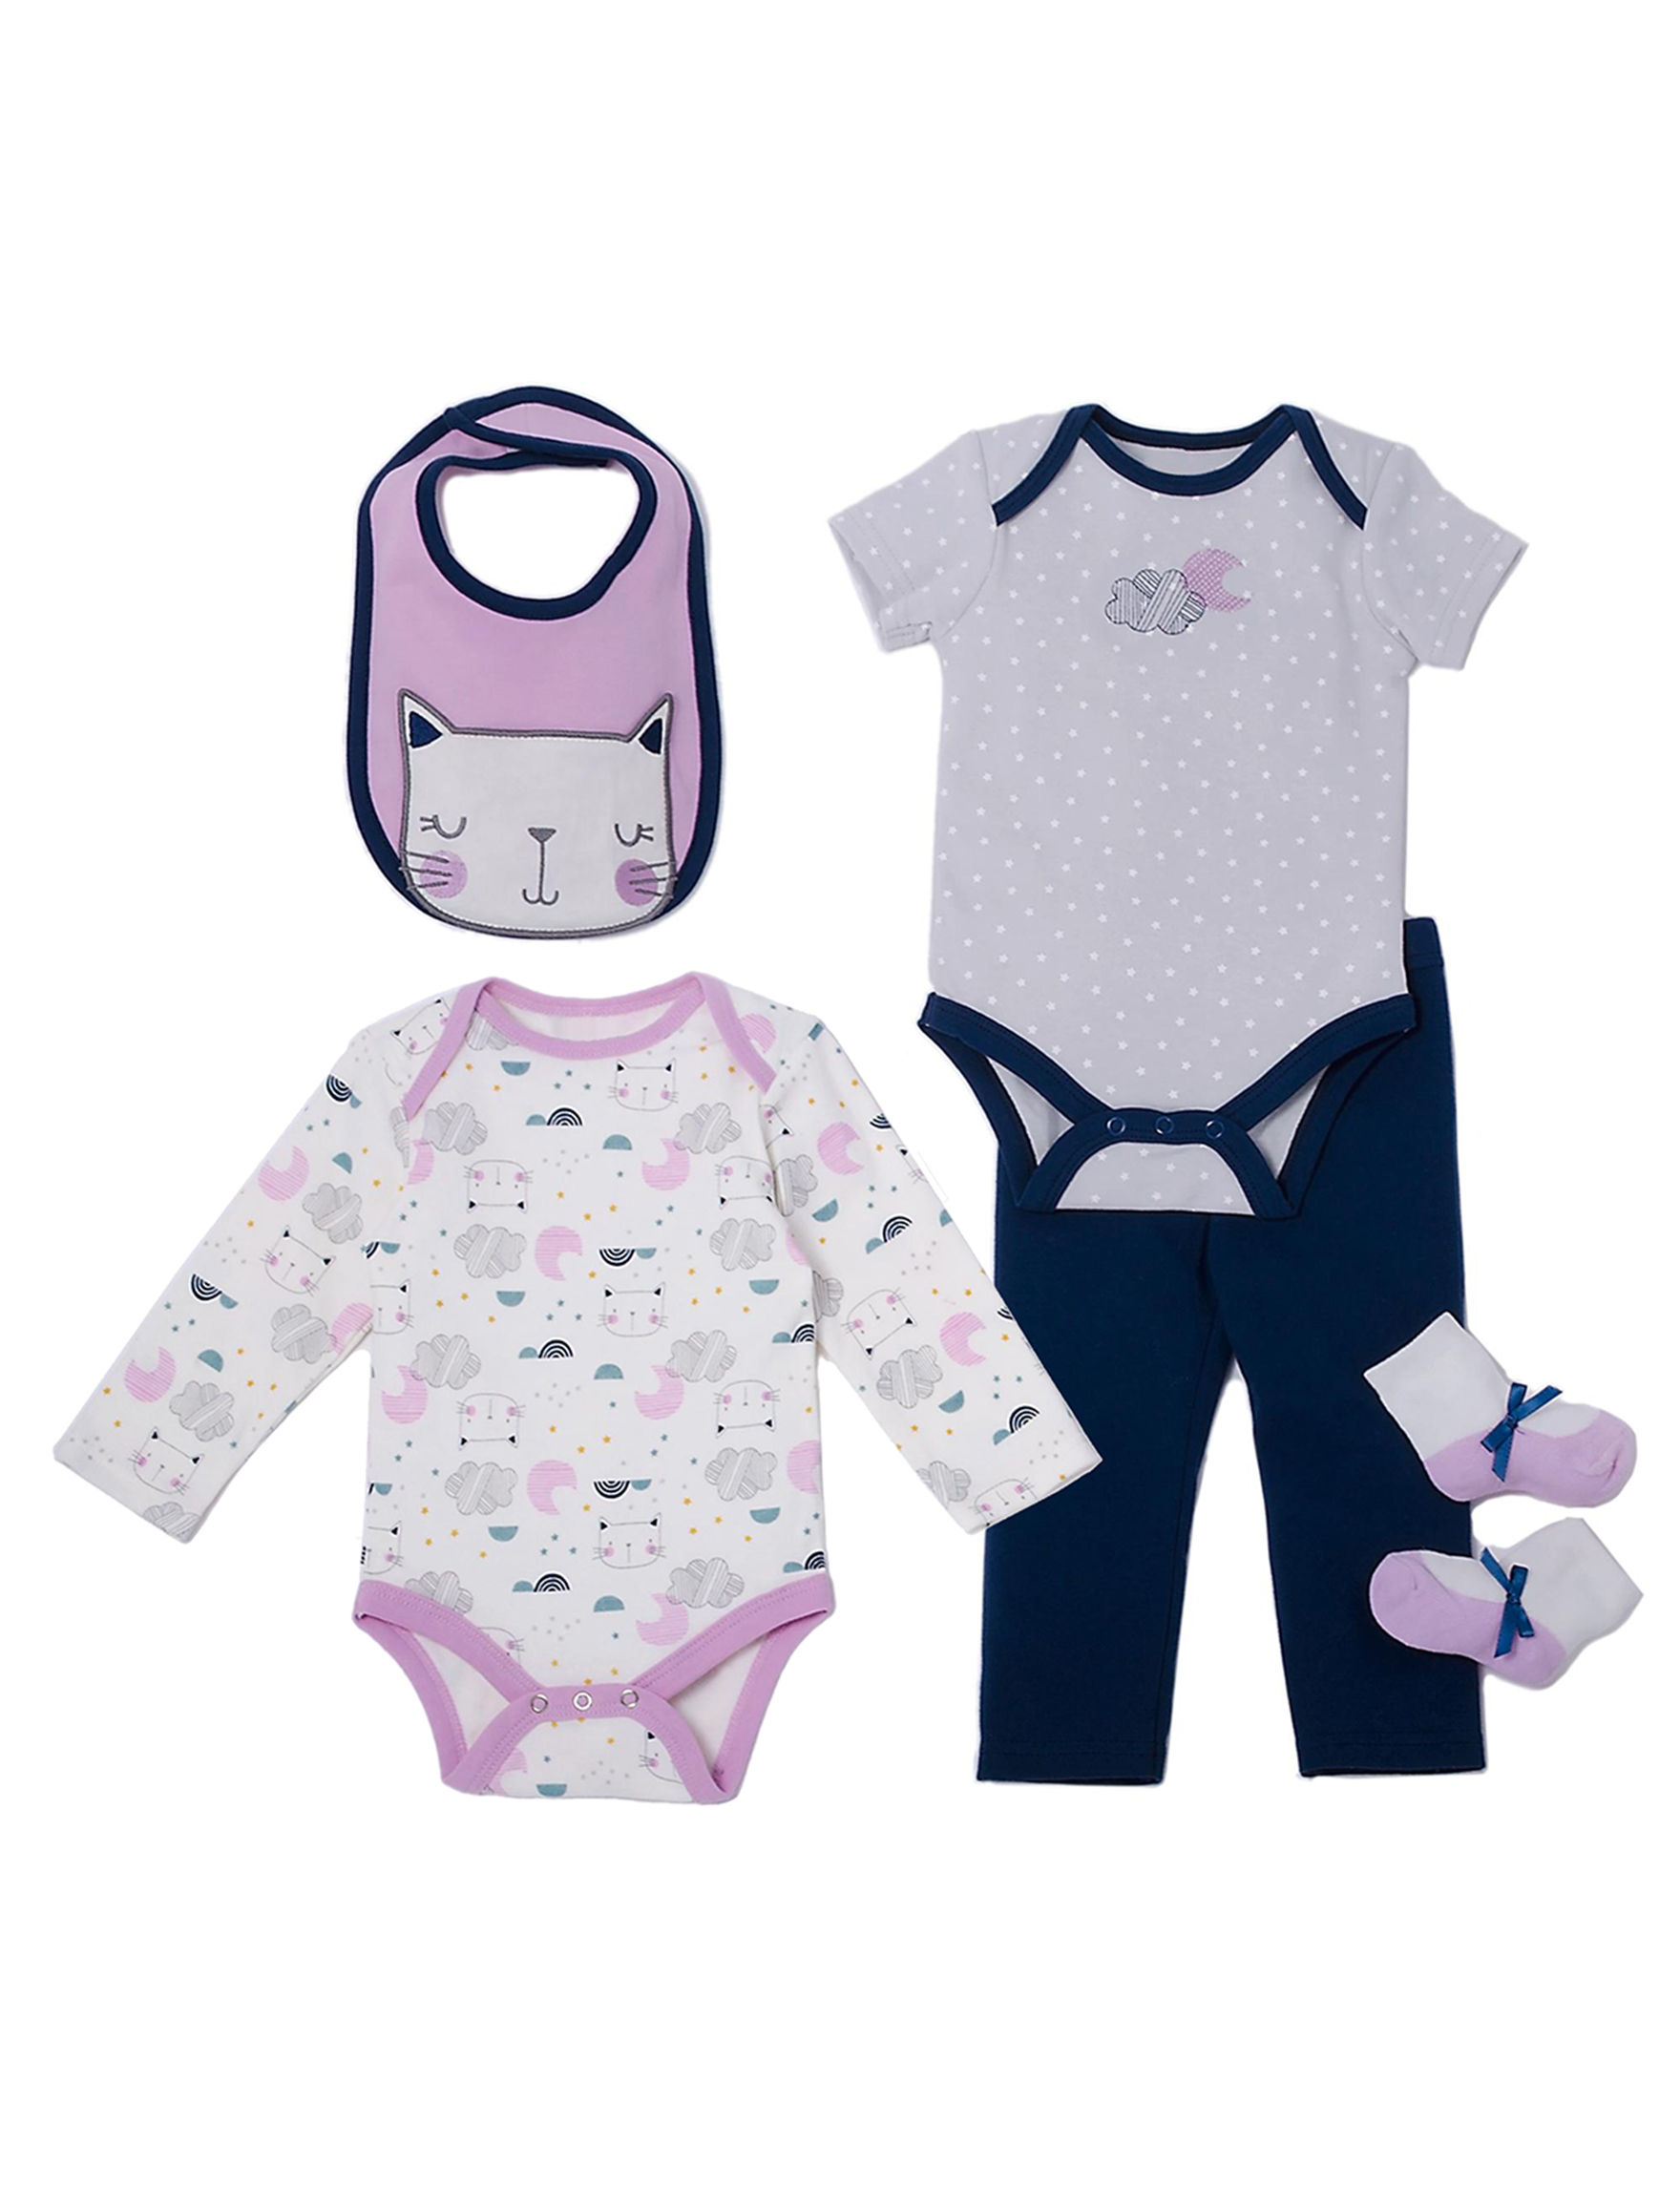 Baby Gear Purple